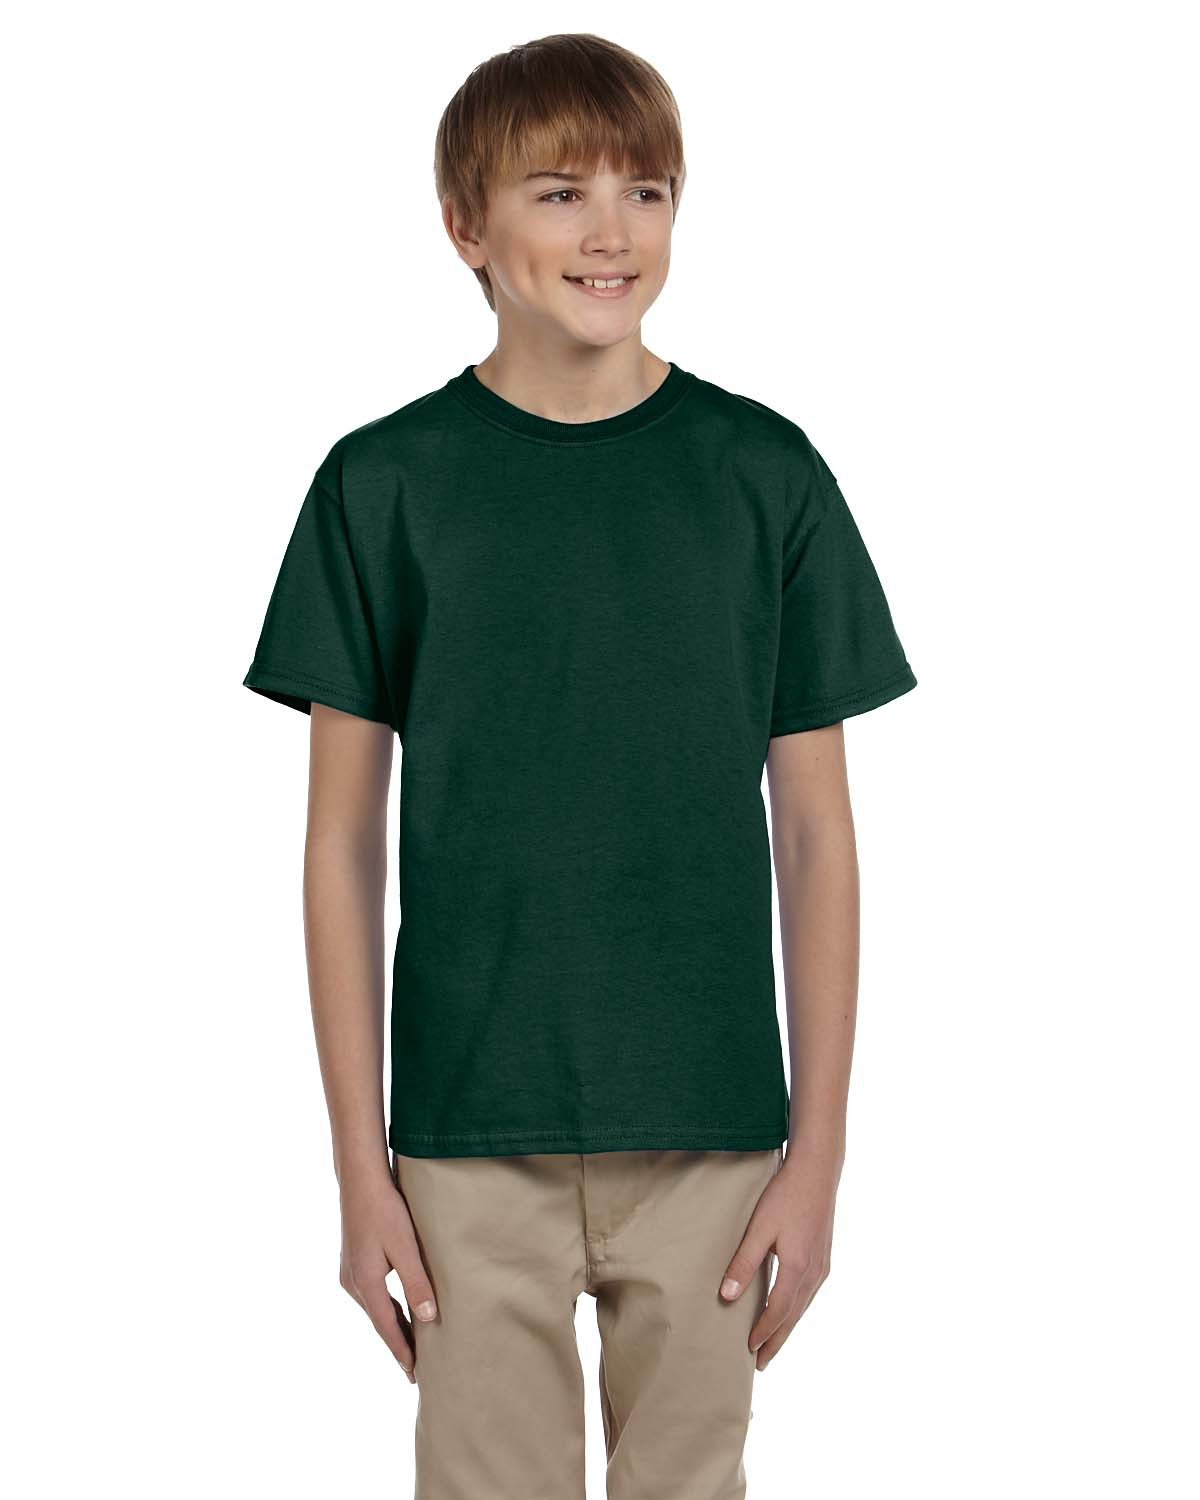 Hanes Youth 50/50 T-Shirt DEEP FOREST